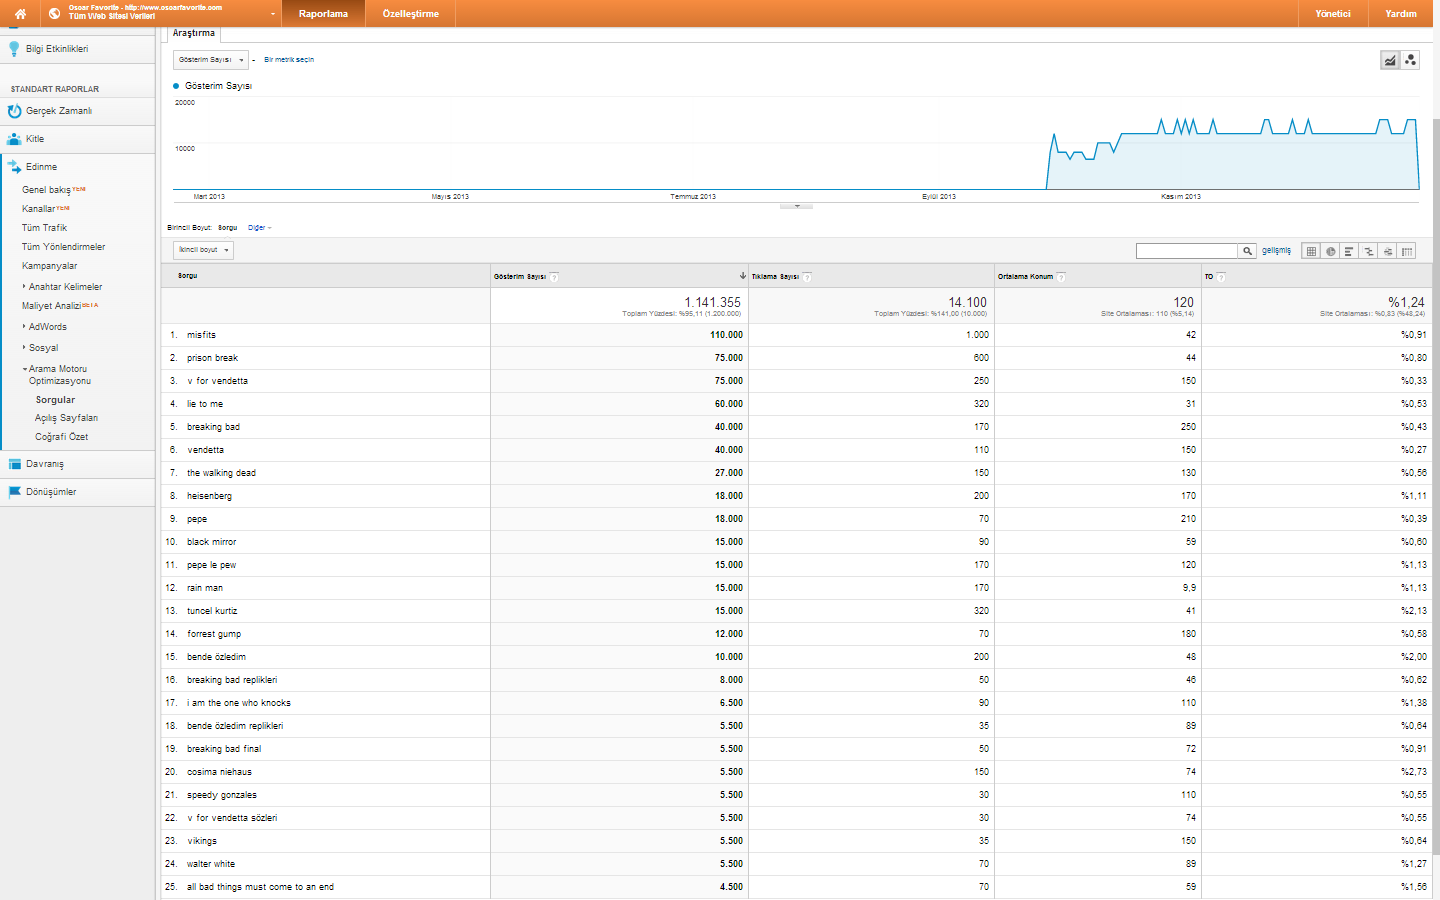 google analytics edinme sorgular gosterim sayisi